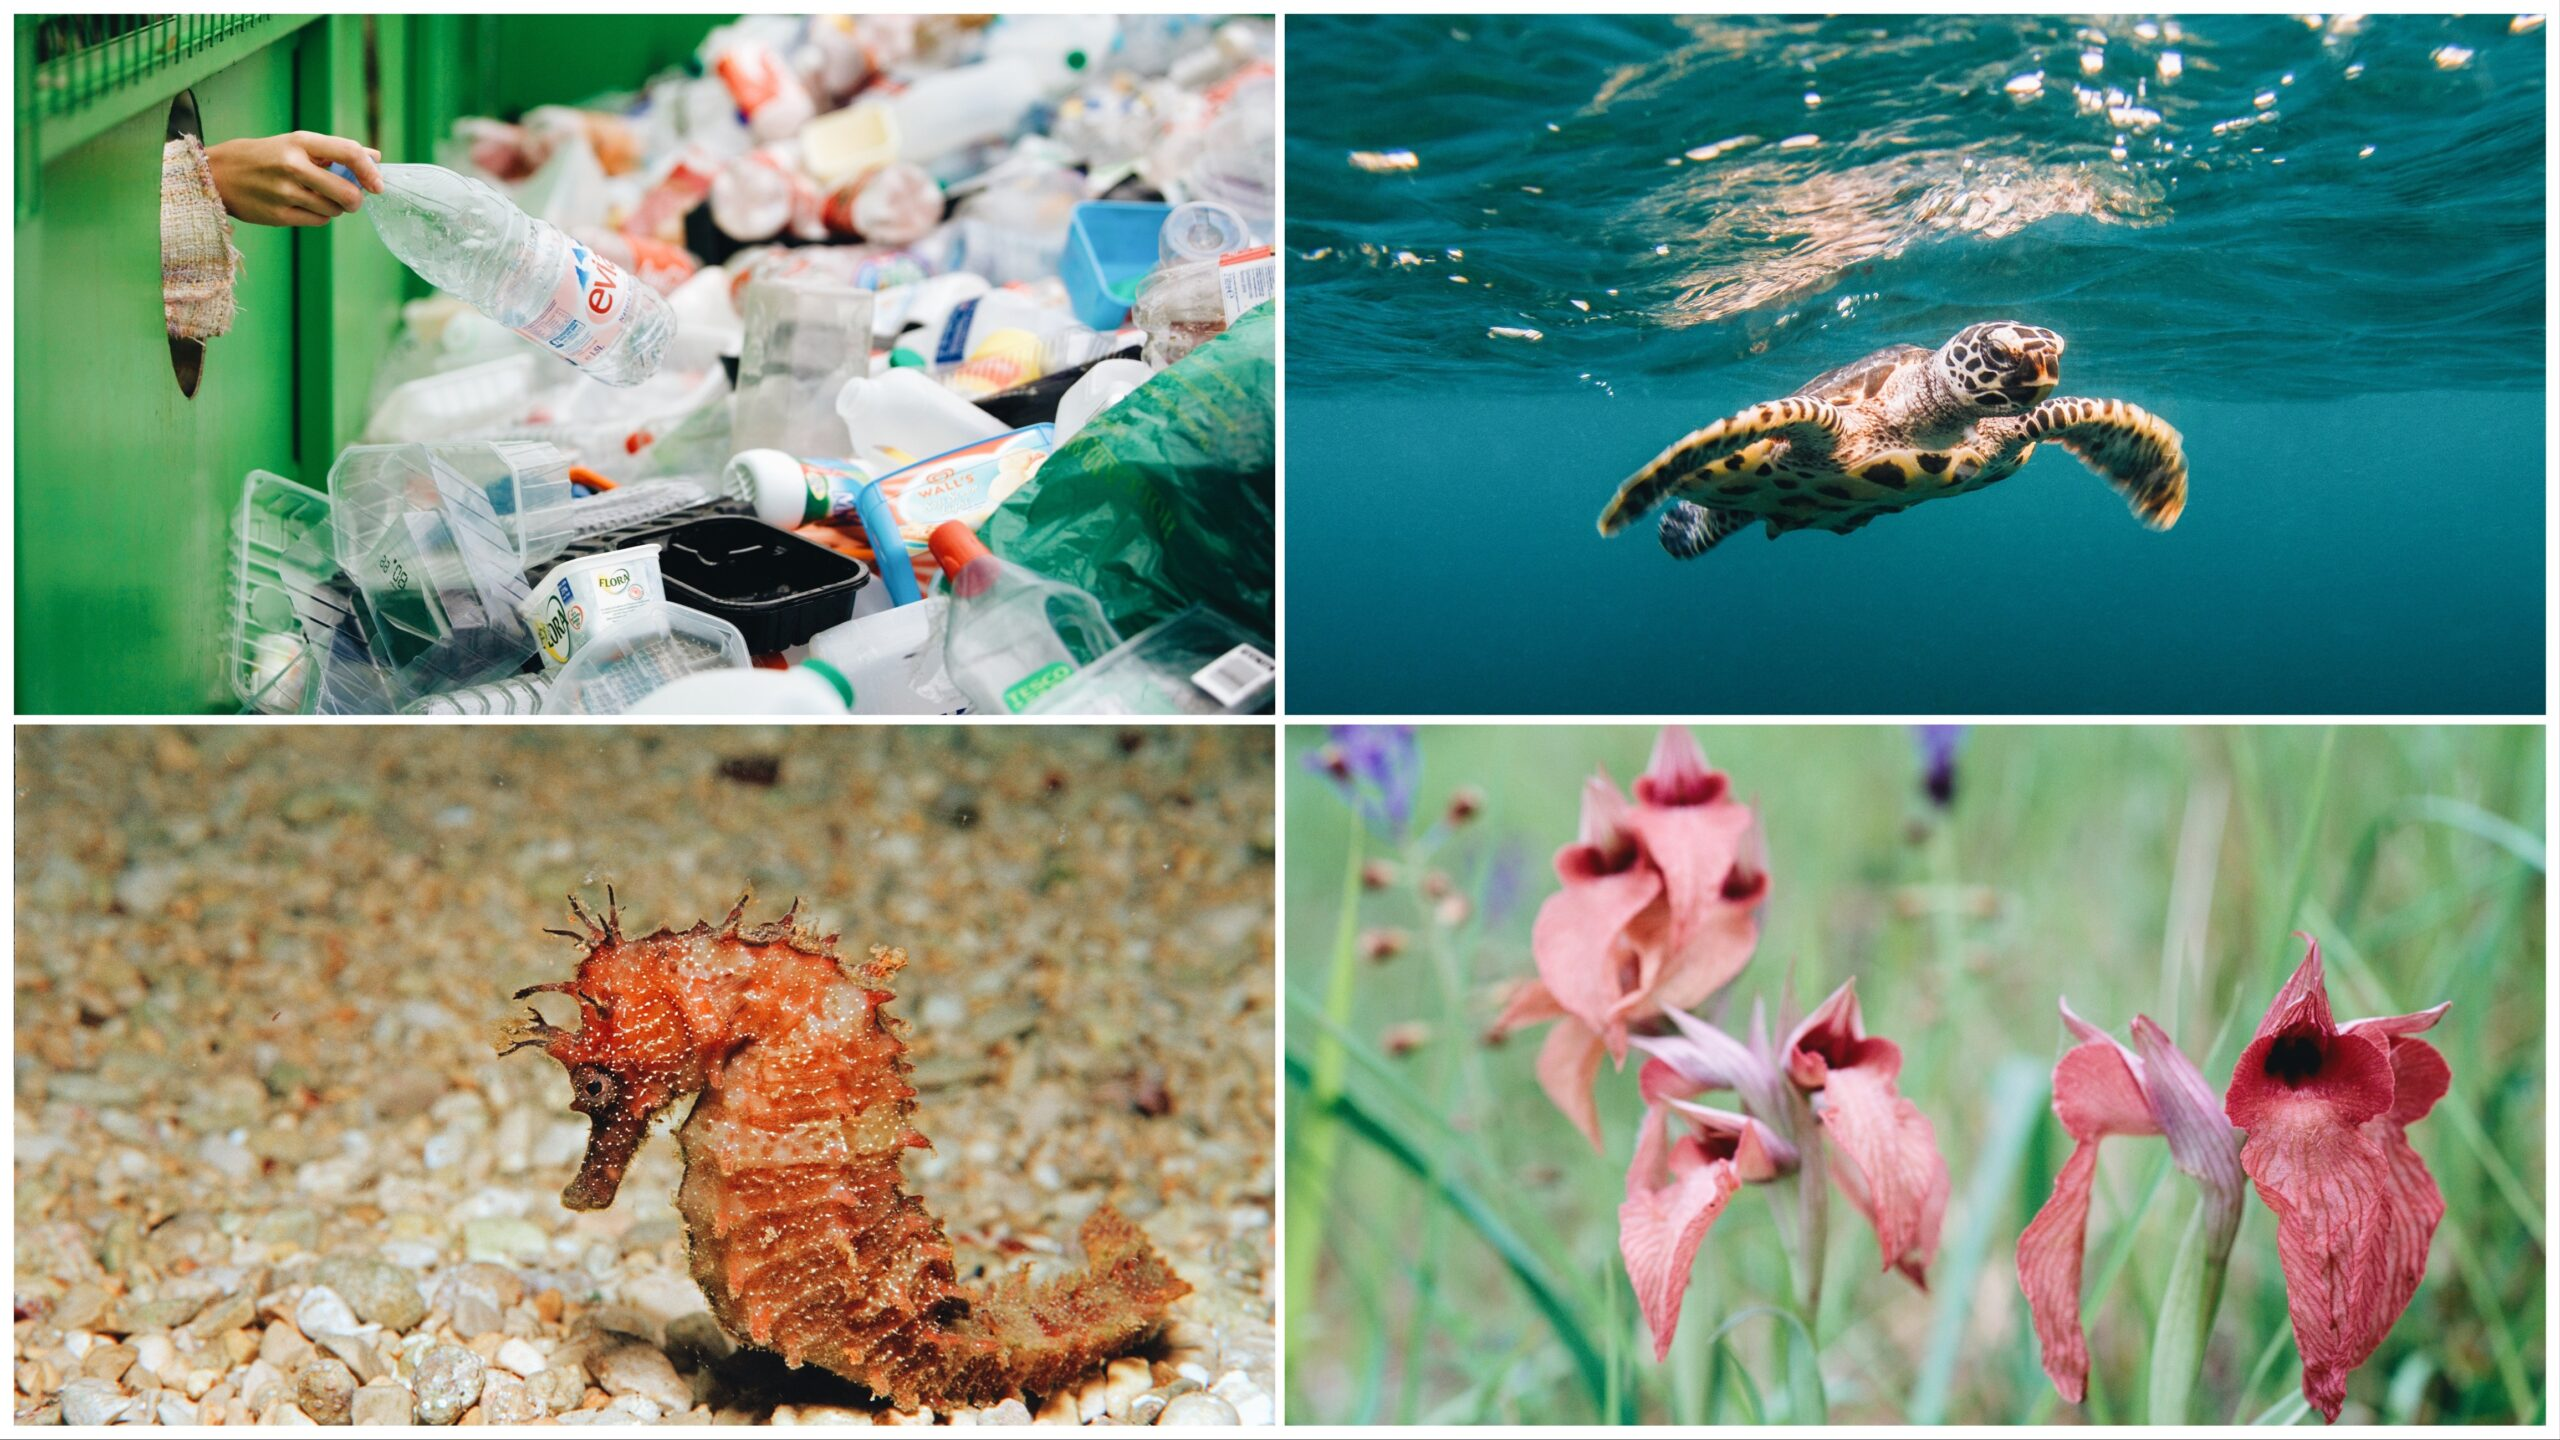 Four-way-split image featuring recycling, a sea turtle, a seahorse, and orchids (L-R clockwise).